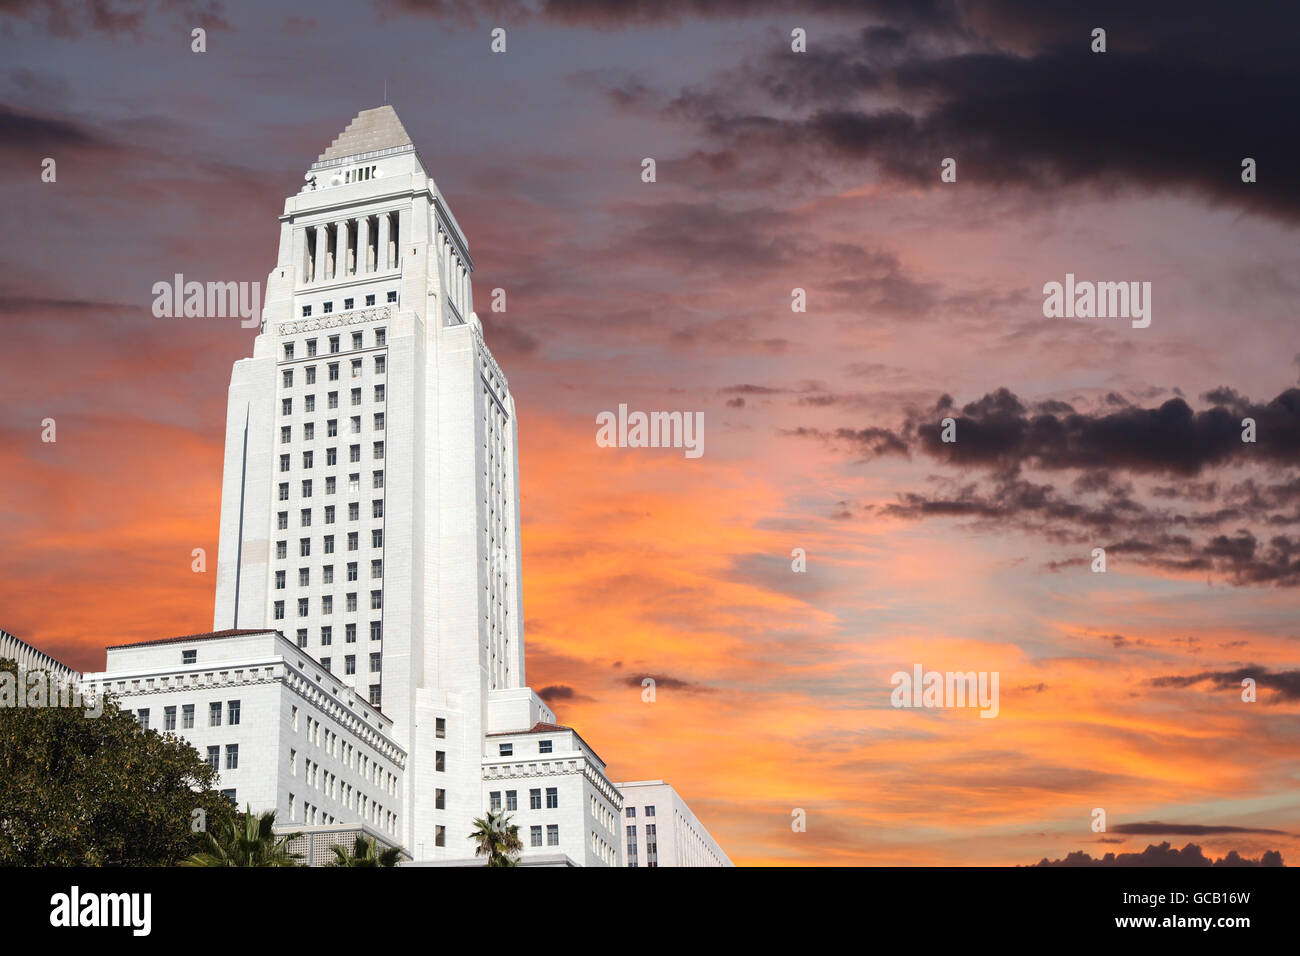 Downtown Los Angeles city hall building with sunrise sky. - Stock Image